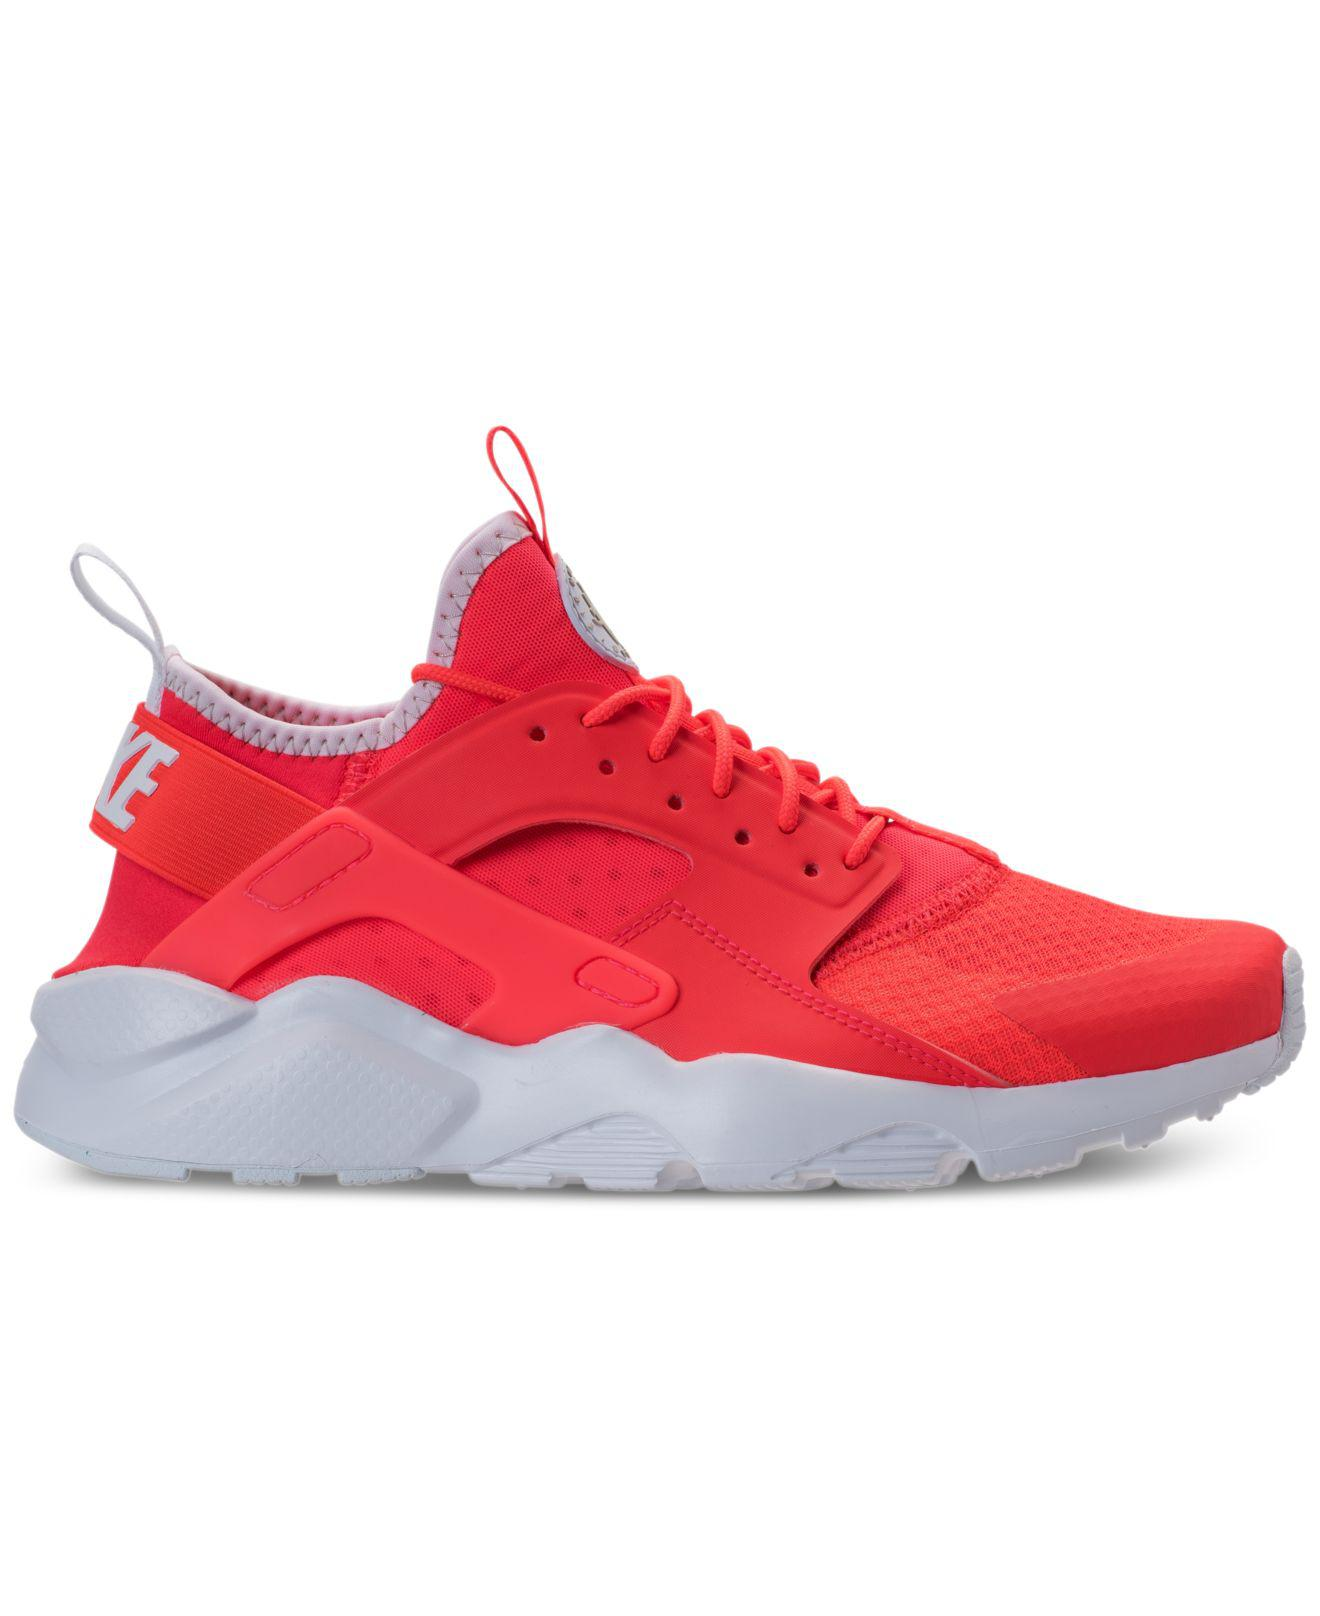 223766ed7c73 Lyst - Nike Air Huarache Run Ultra Running Sneakers From Finish Line in Red  for Men